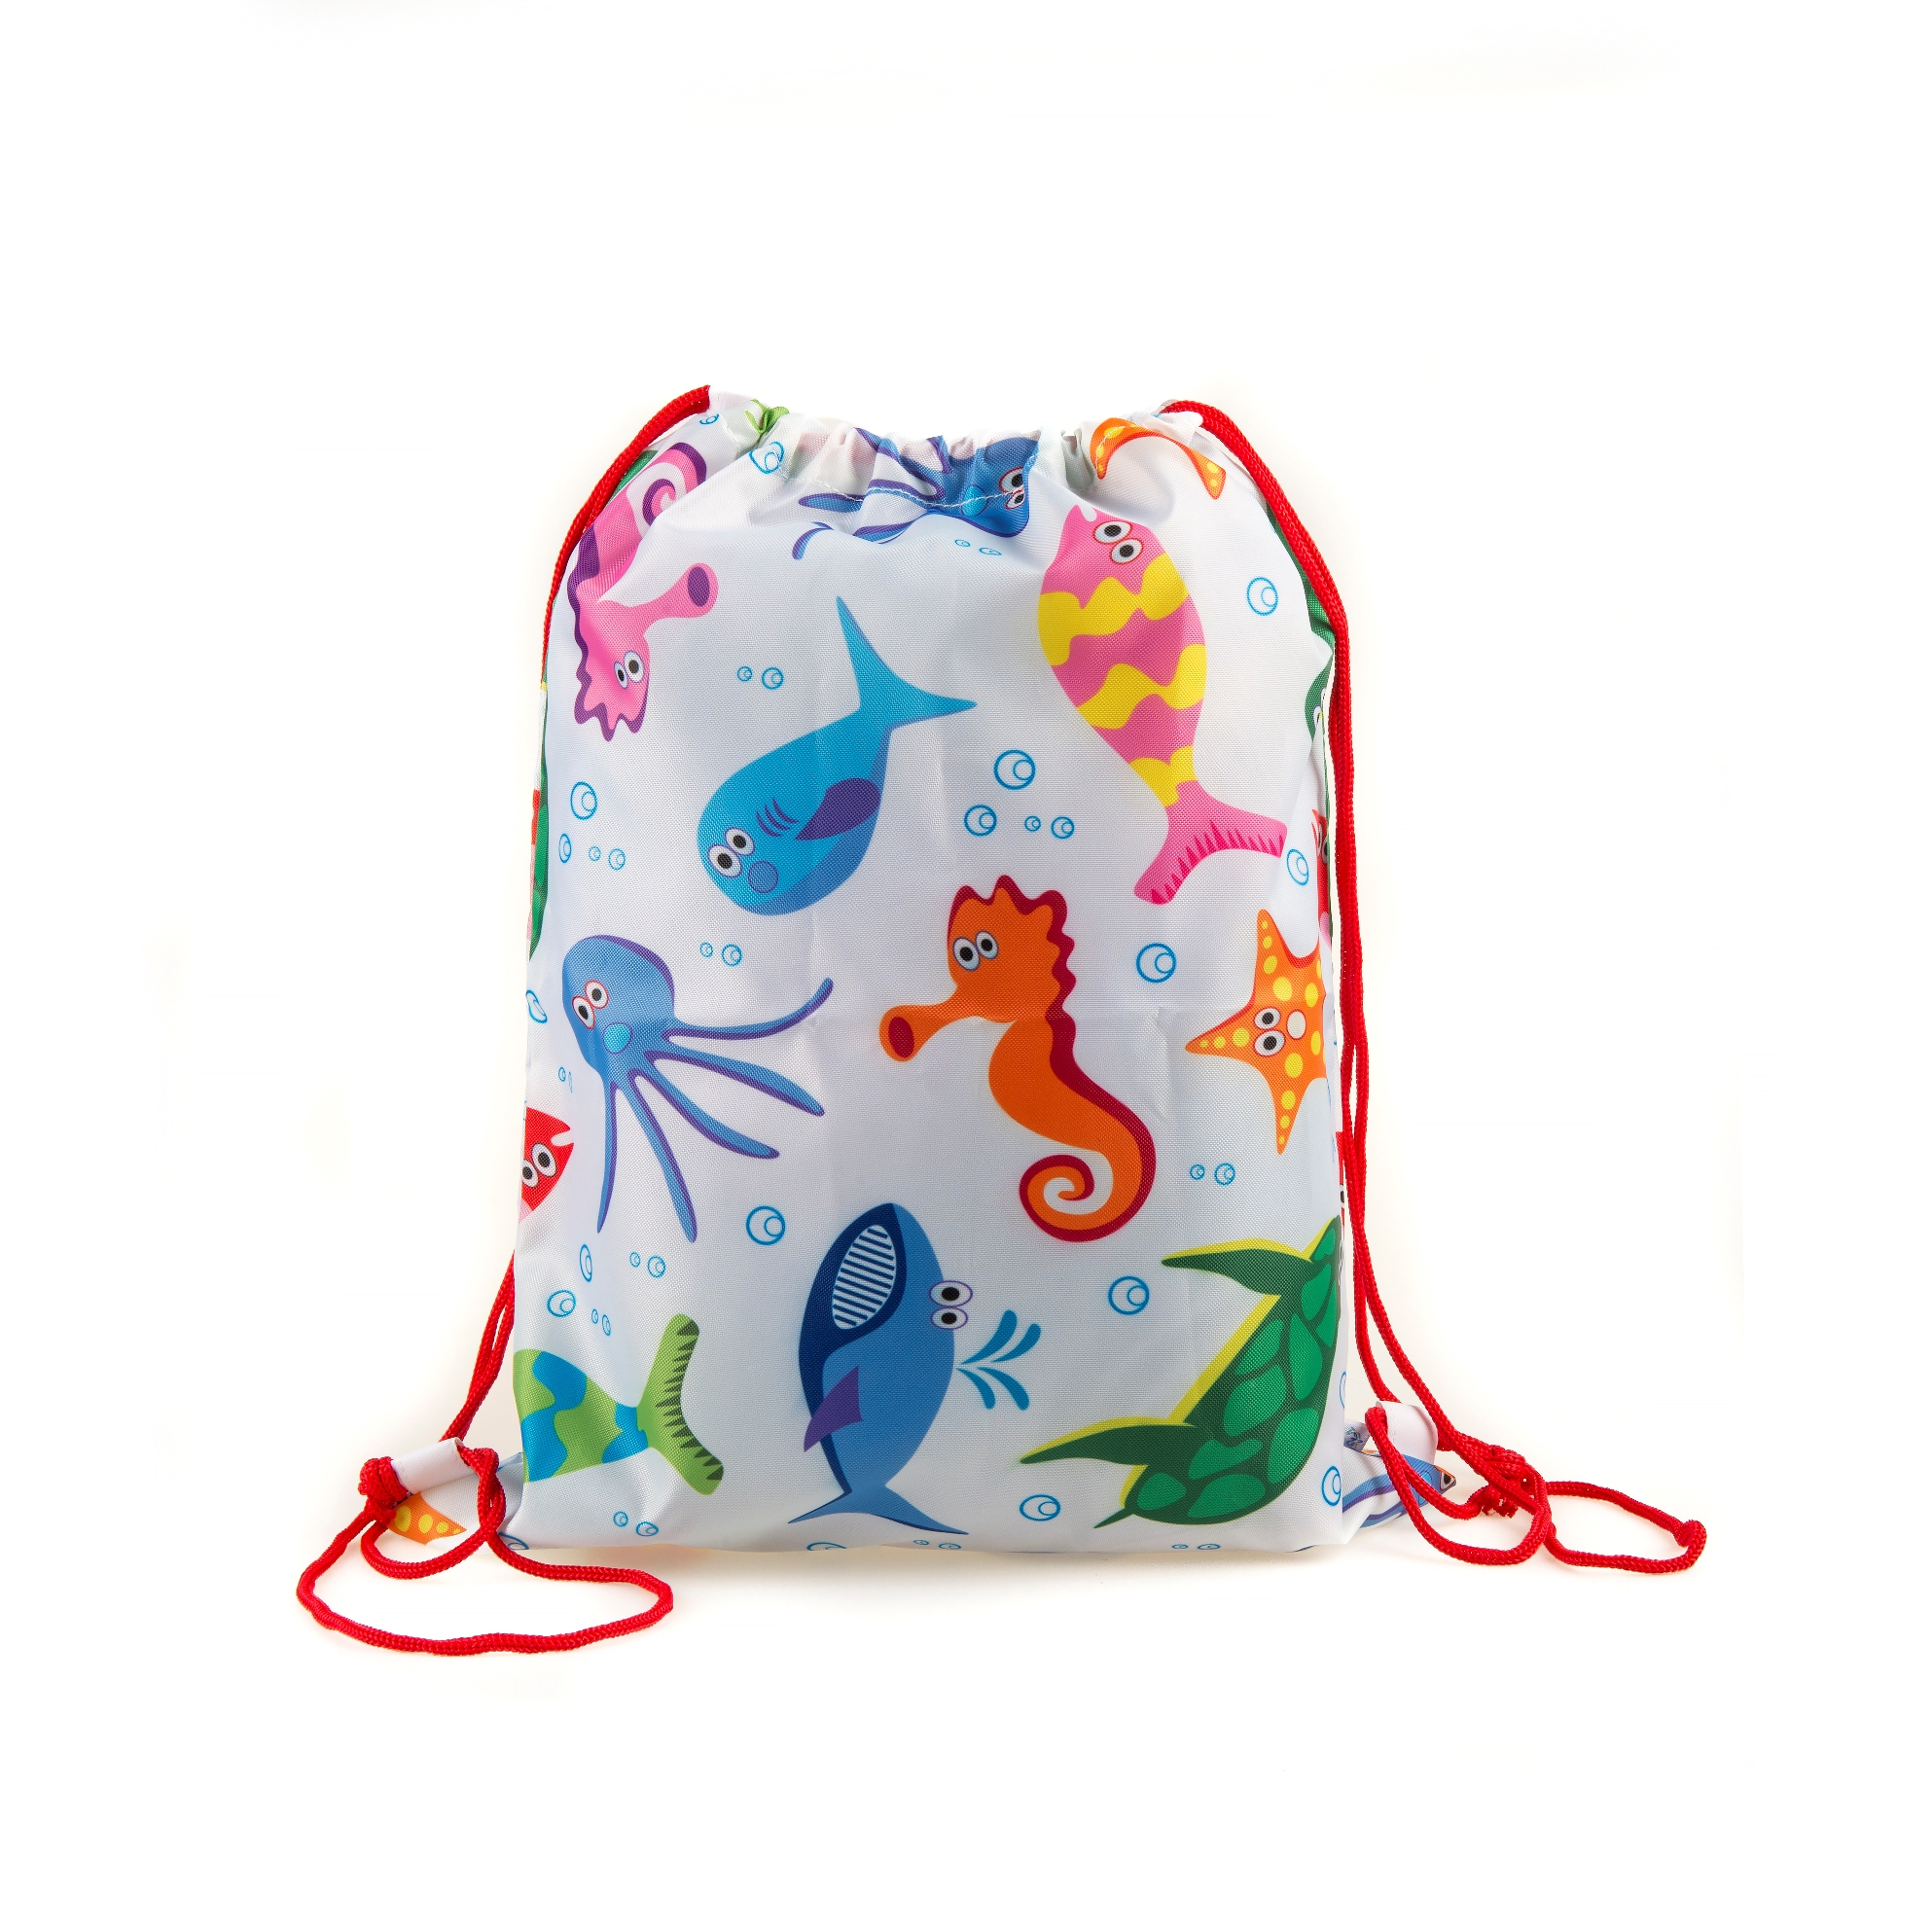 Ocean friend drawstring bag (P10)